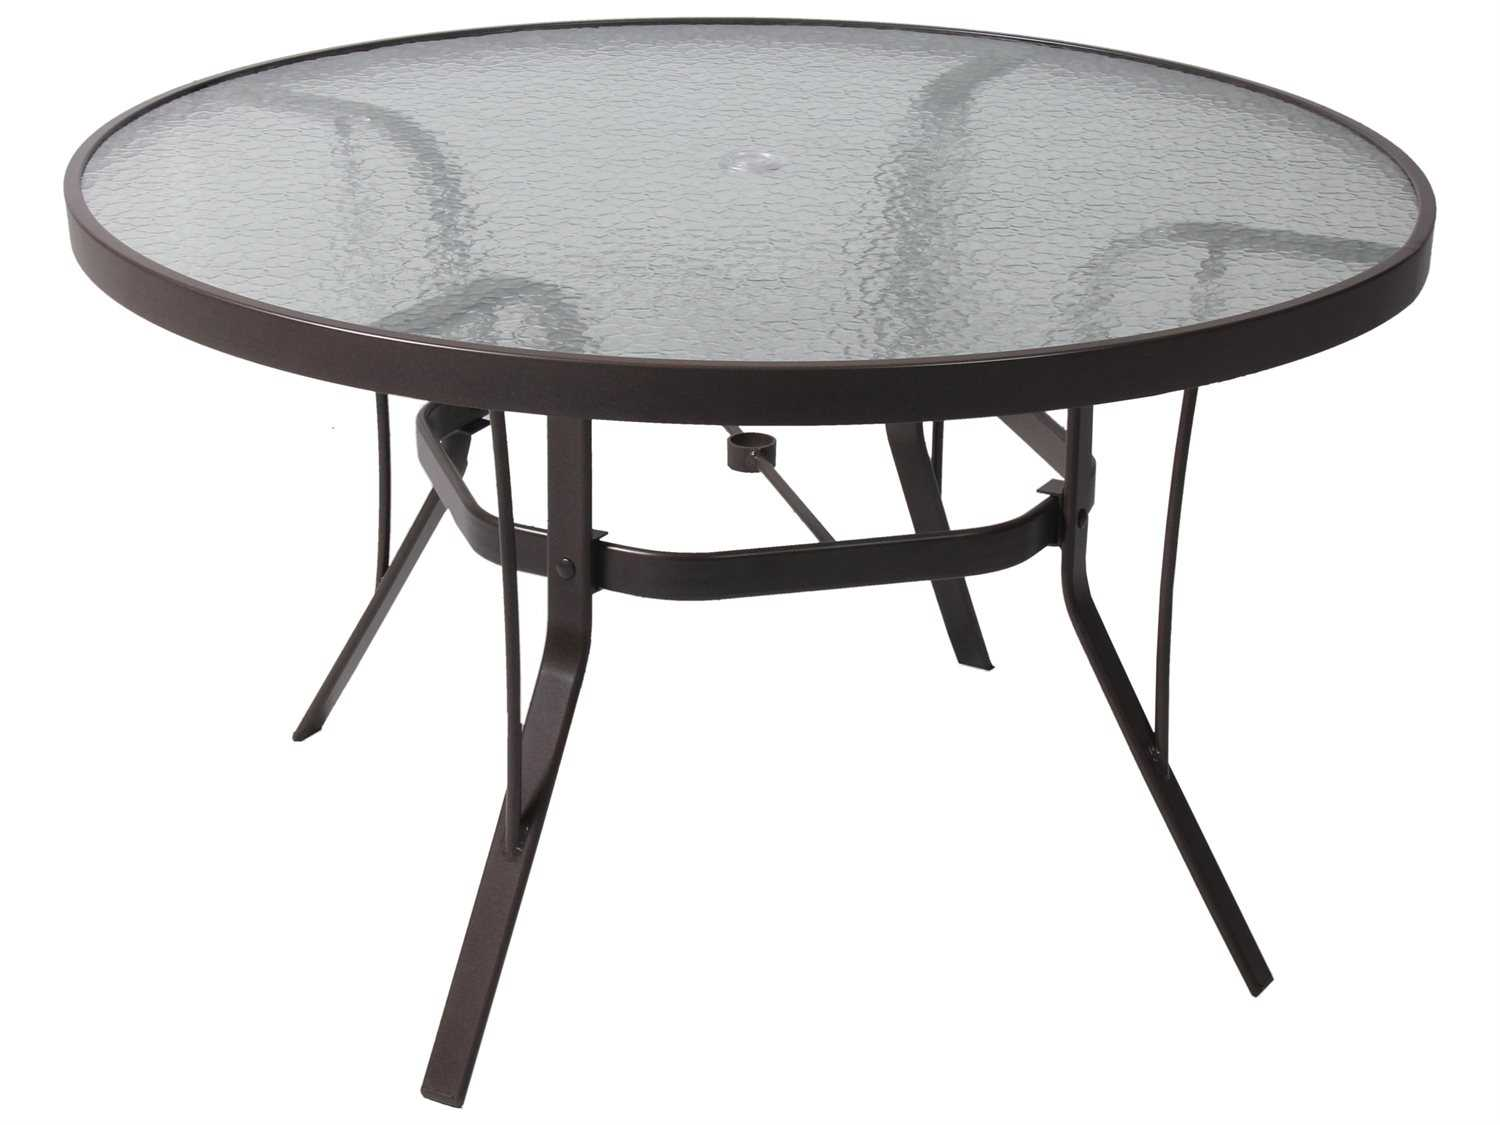 suncoast cast aluminum 36 39 39 round glass top dining table 36kd. Black Bedroom Furniture Sets. Home Design Ideas